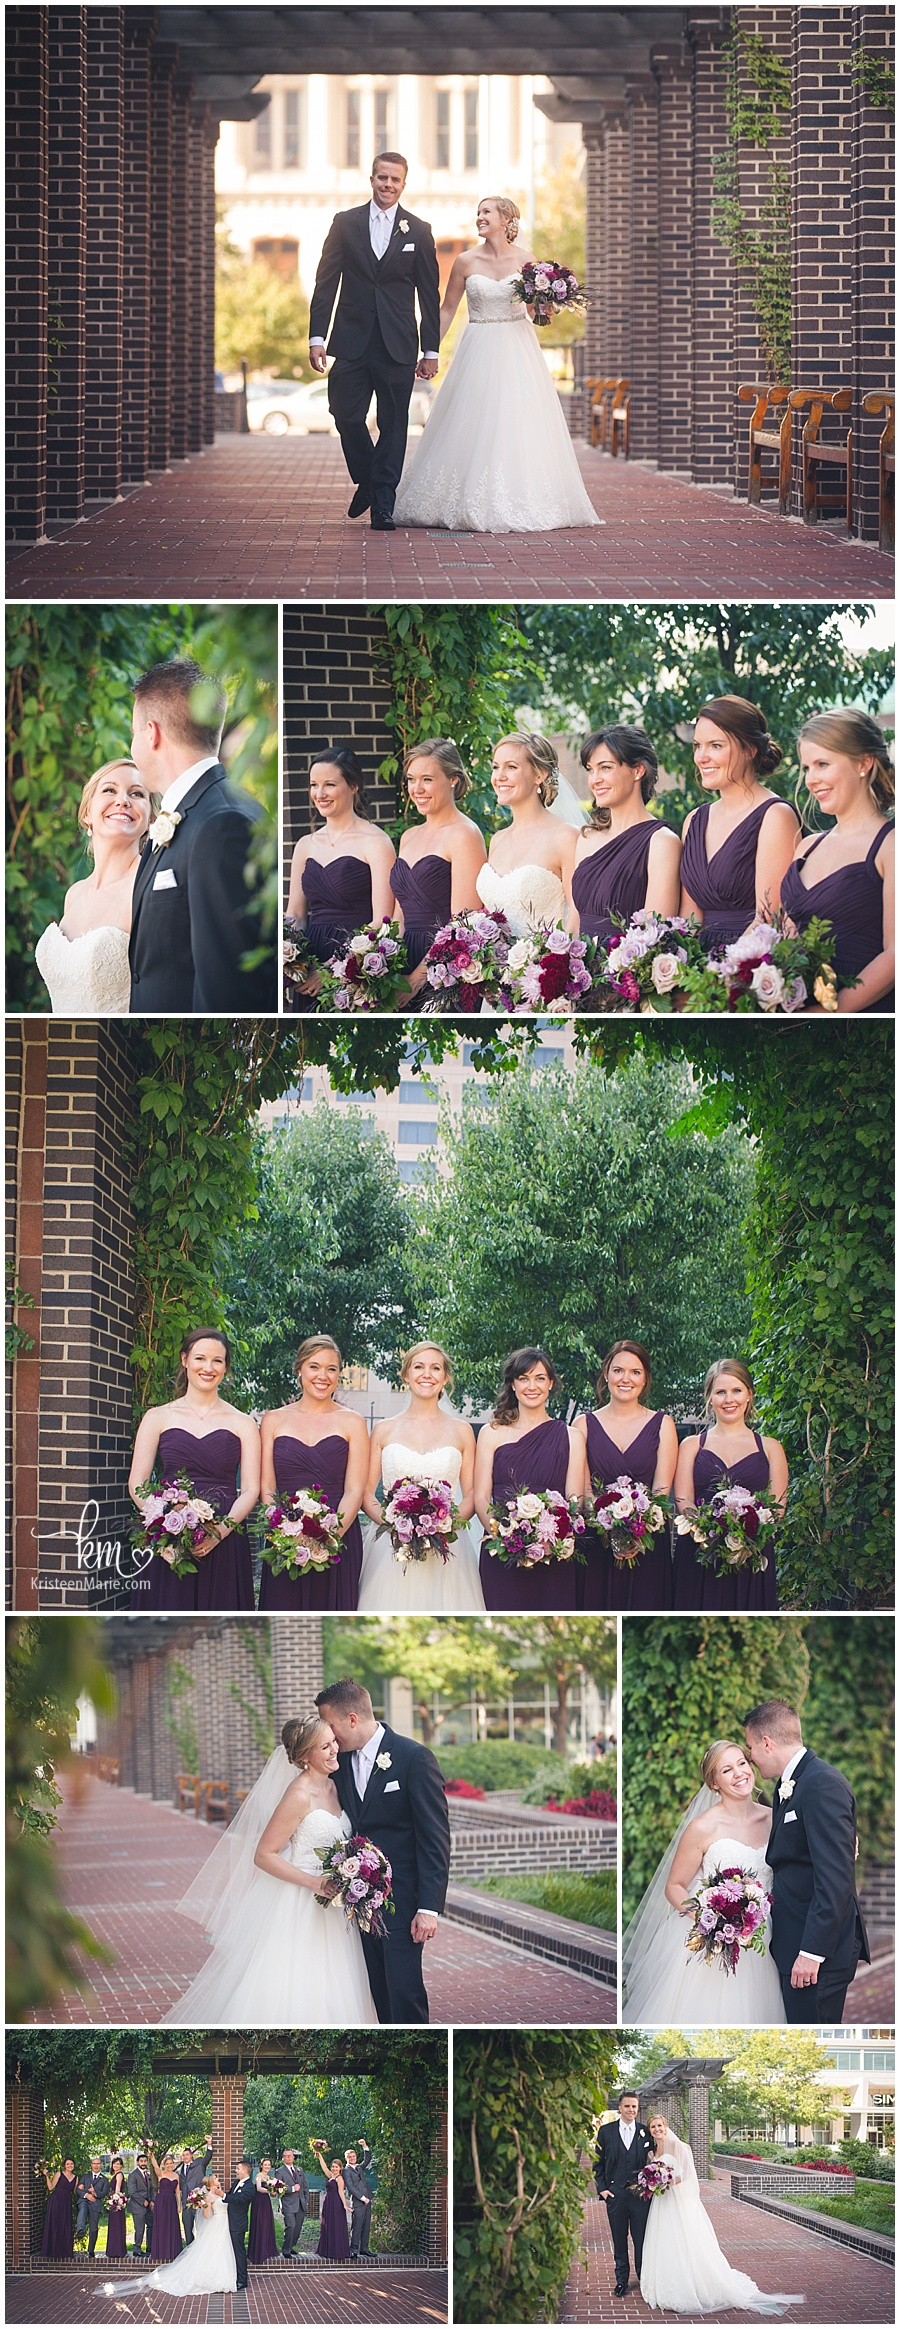 Indianapolis wedding photography by KristeenMarie